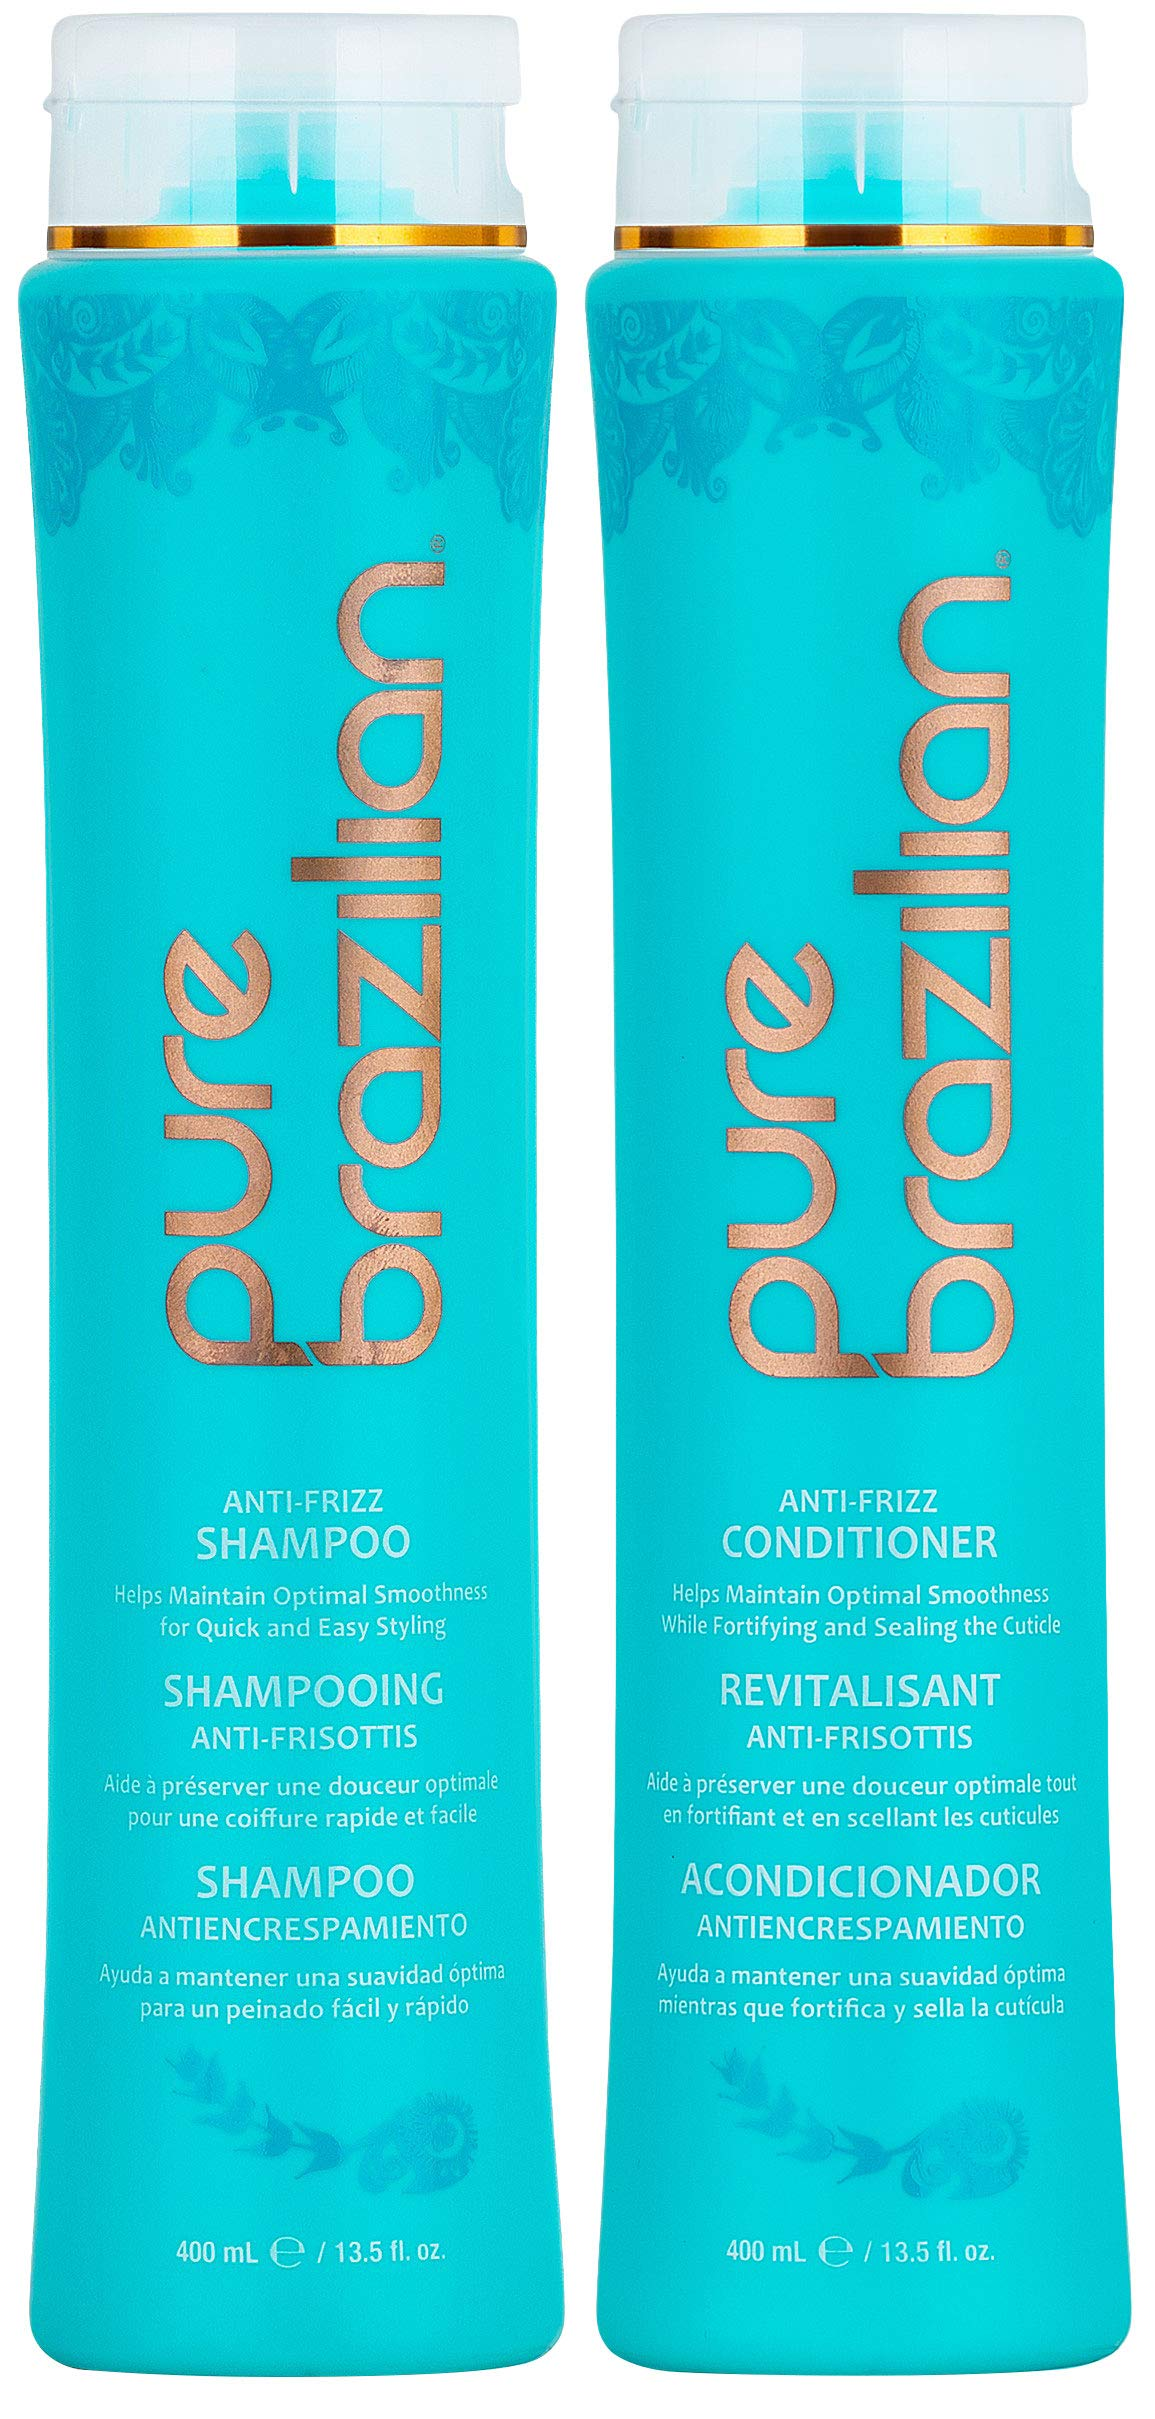 PURE BRAZILIAN Anti Frizz Daily Shampoo & Conditioner - Salt-Free & Color Safe Shampoo & Conditioner Enriched With Keratin, Argan Oil, and Acai (13.5 Ounce / 400 Milliliter) by Pure Brazilian